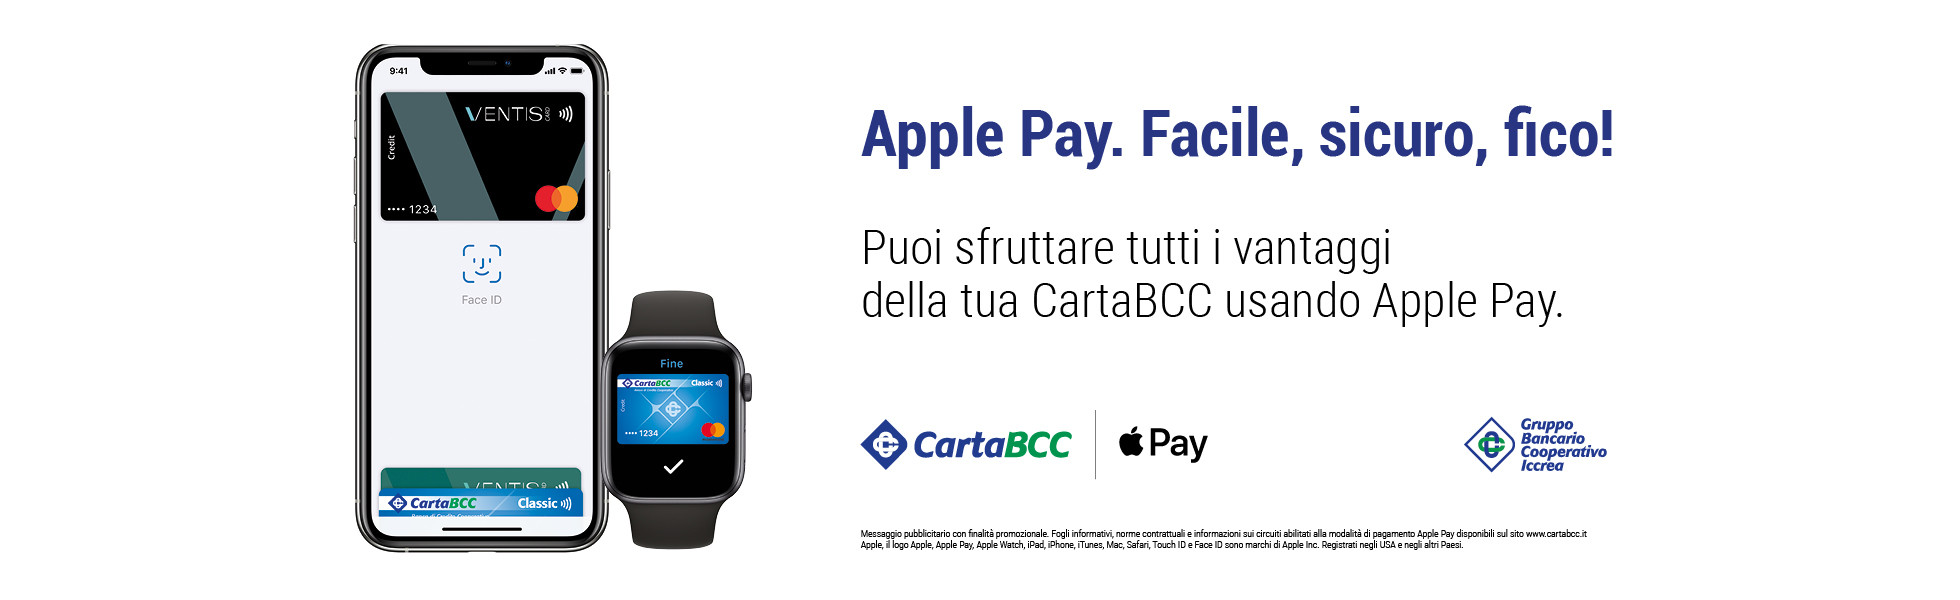 Apple Pay per notizie